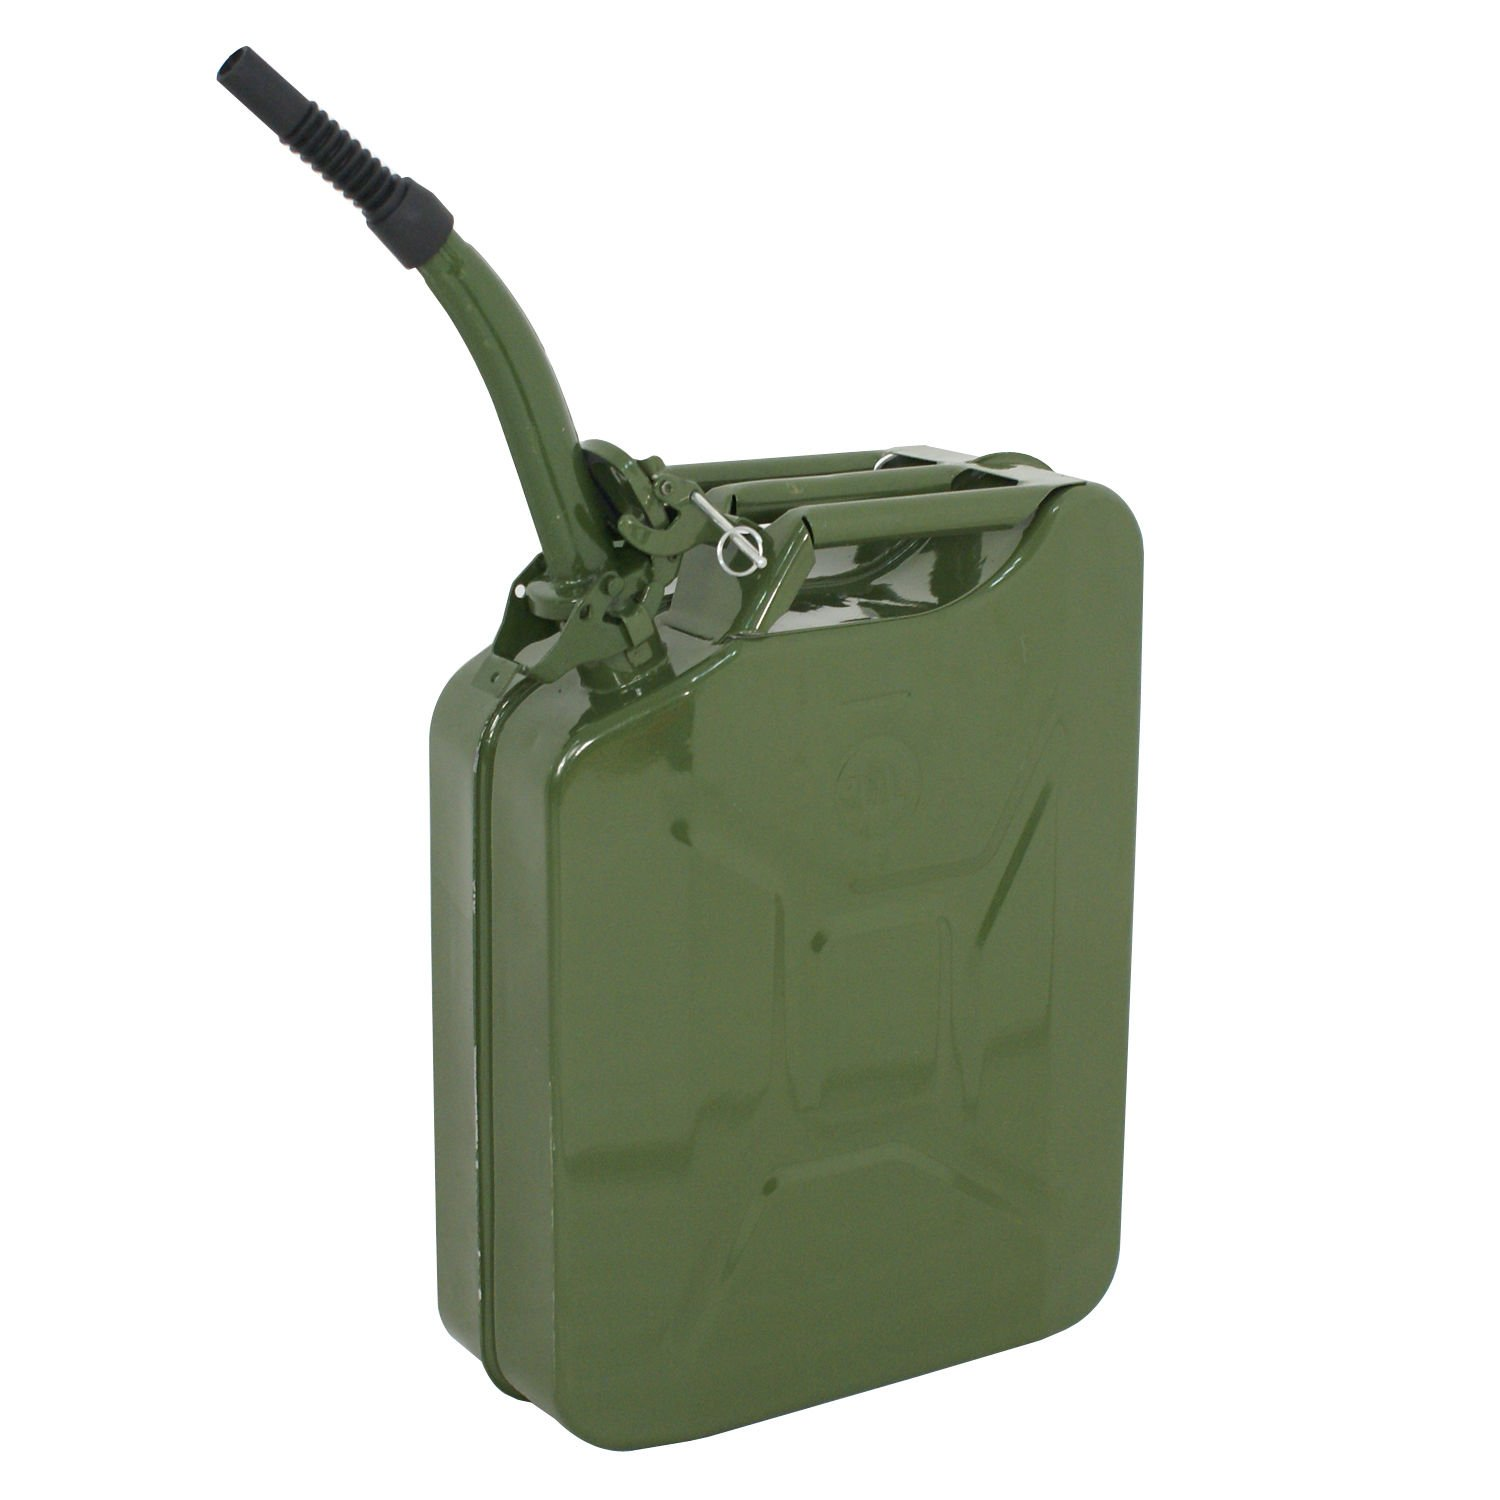 Clever Market Gas Tank Jerry Can Automotive Fuel Steel Tank Emergency Backup NATO Army Gasoline Iron Military Green Tank 5 Gal 20L